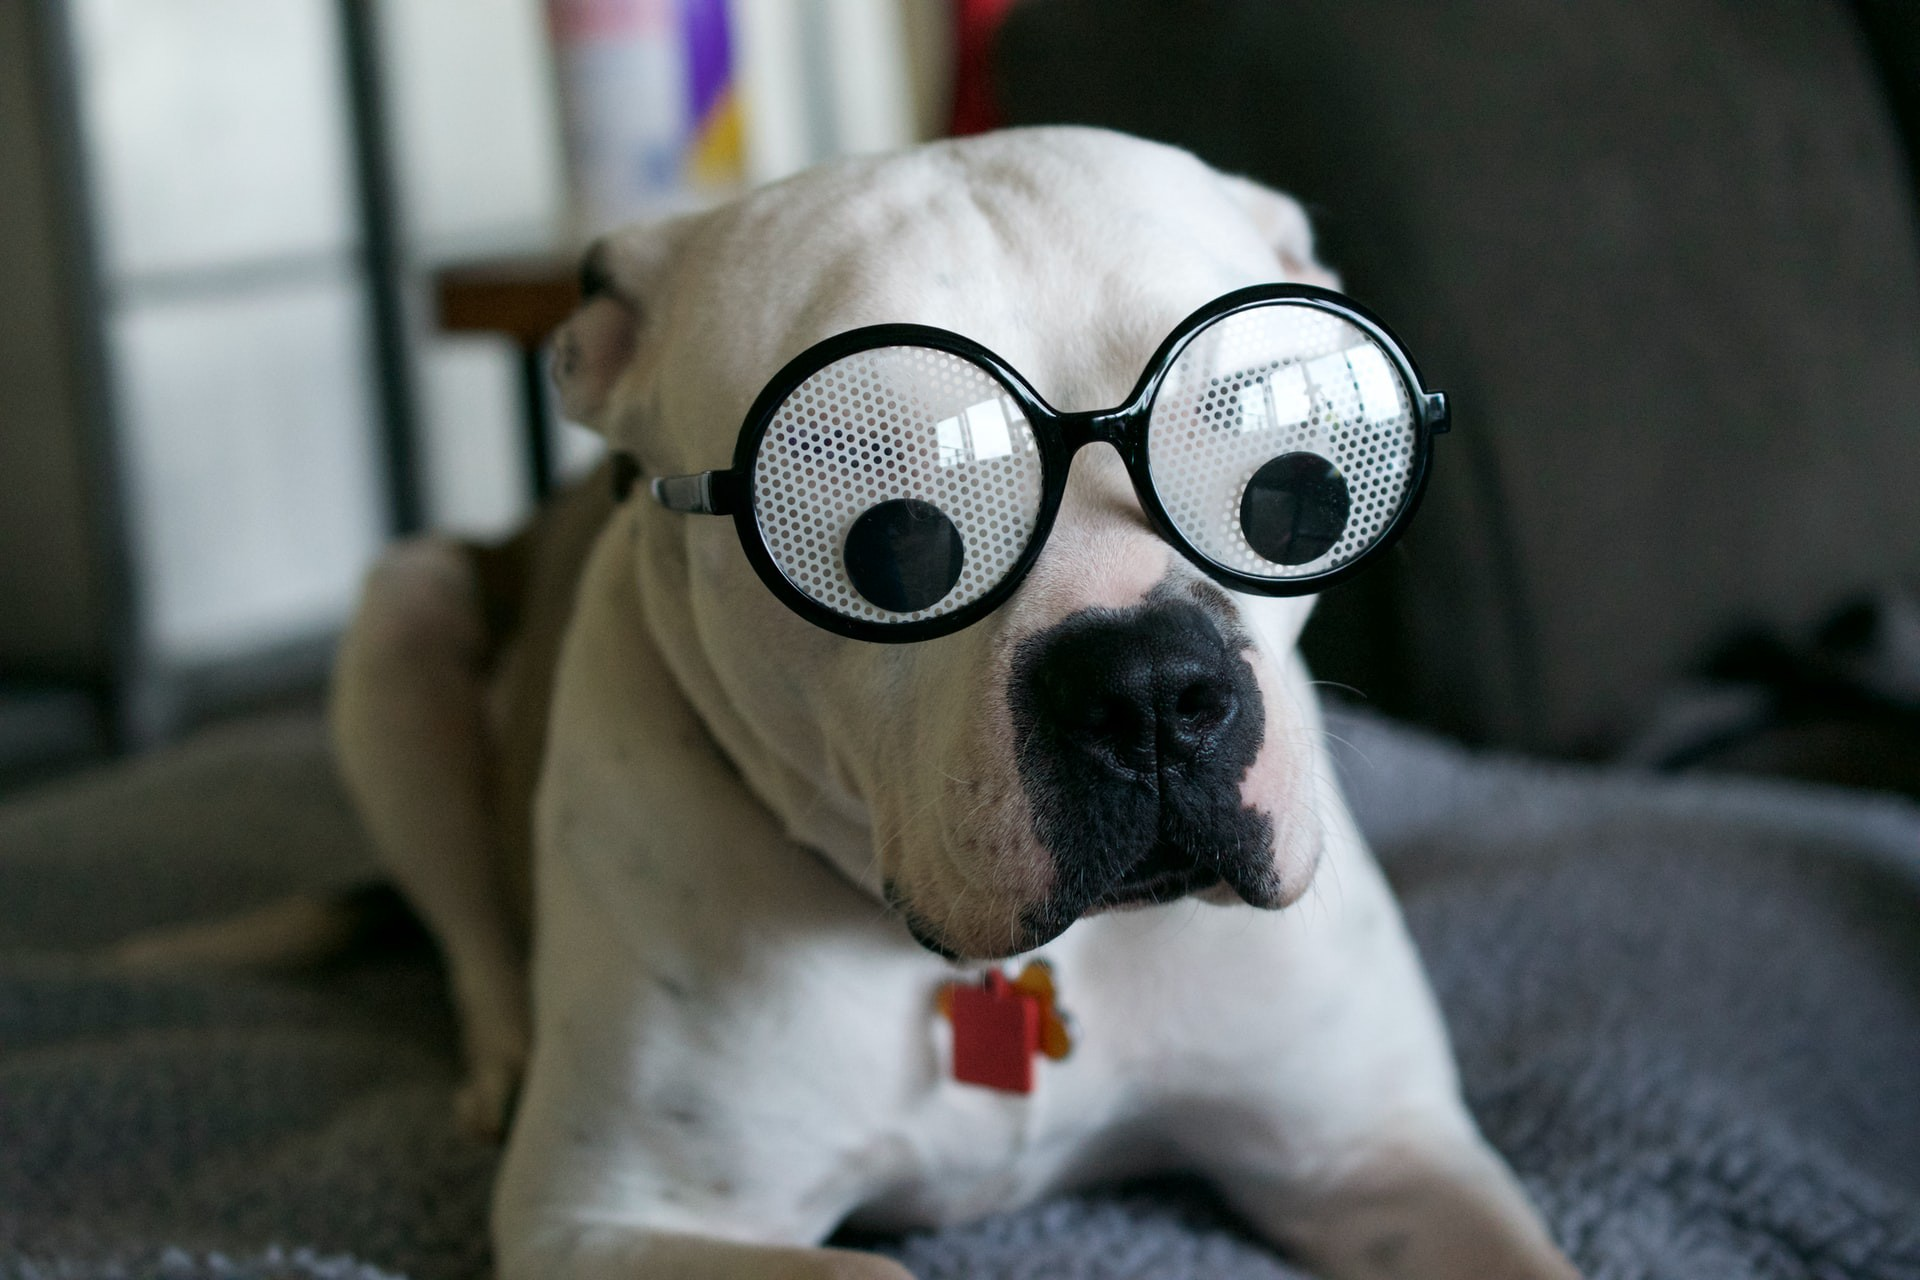 Dog wearing glasses with googly eyes.